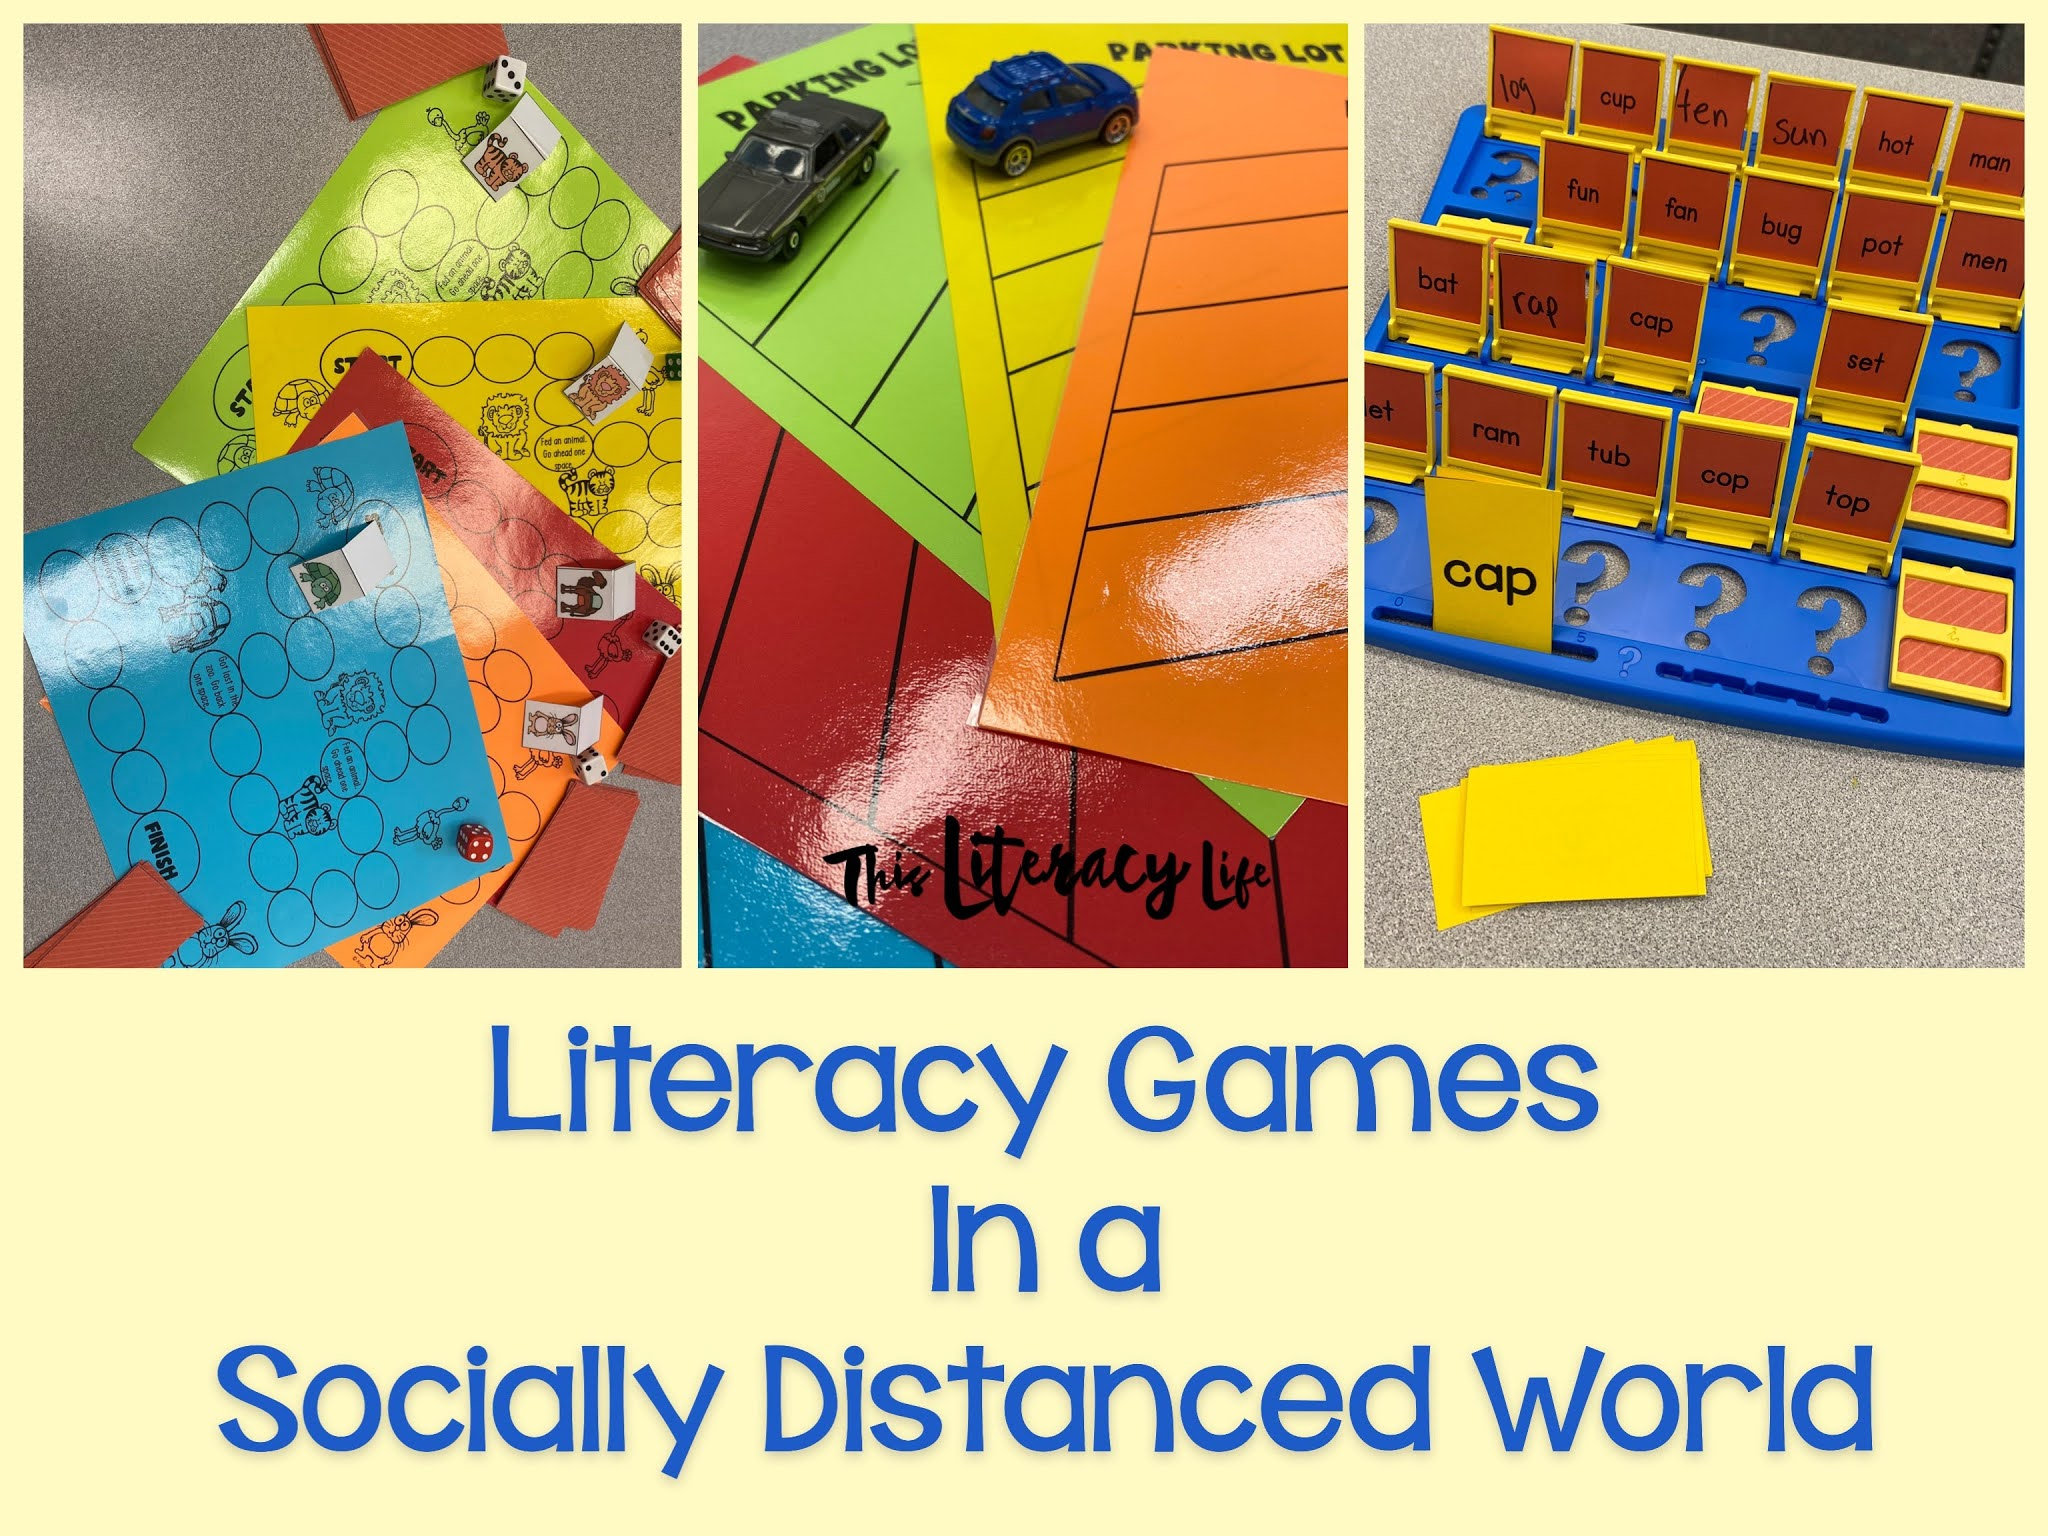 Using games in the classroom my look different, but there are ways to do it in our socially distanced world.